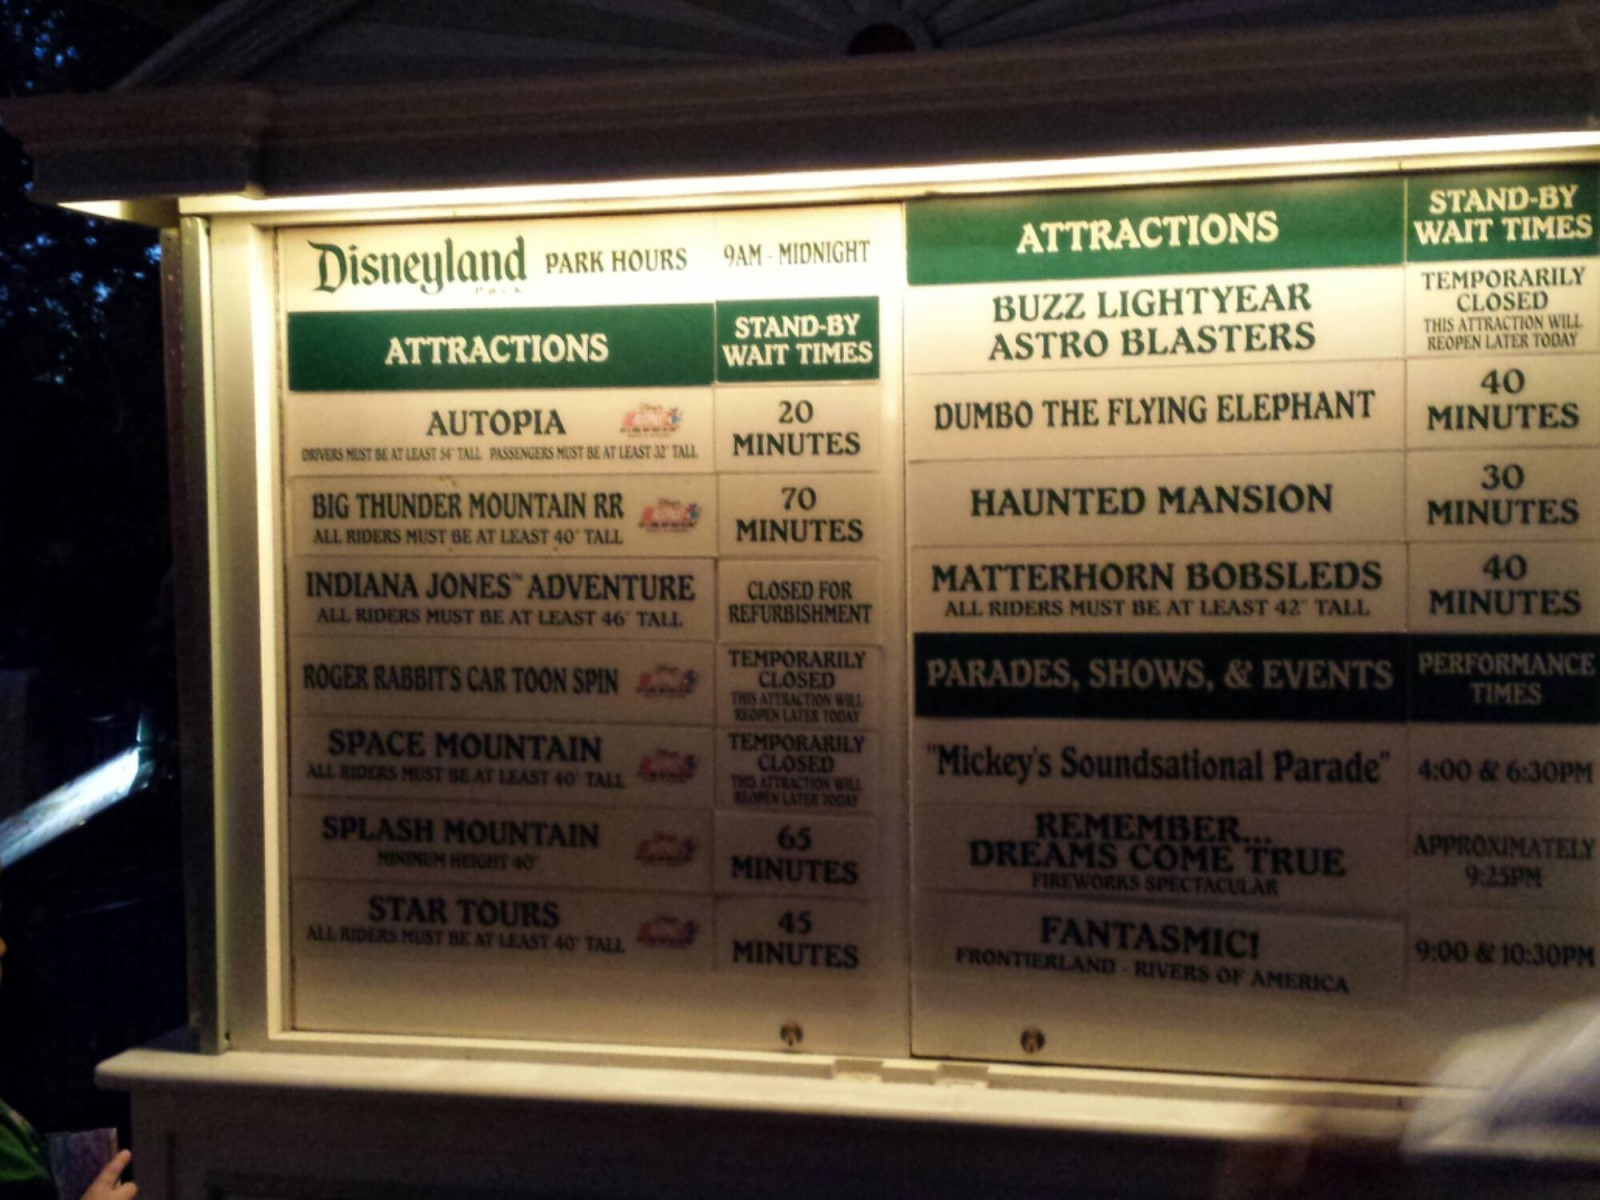 #Disneyland wait times at 7:30pm